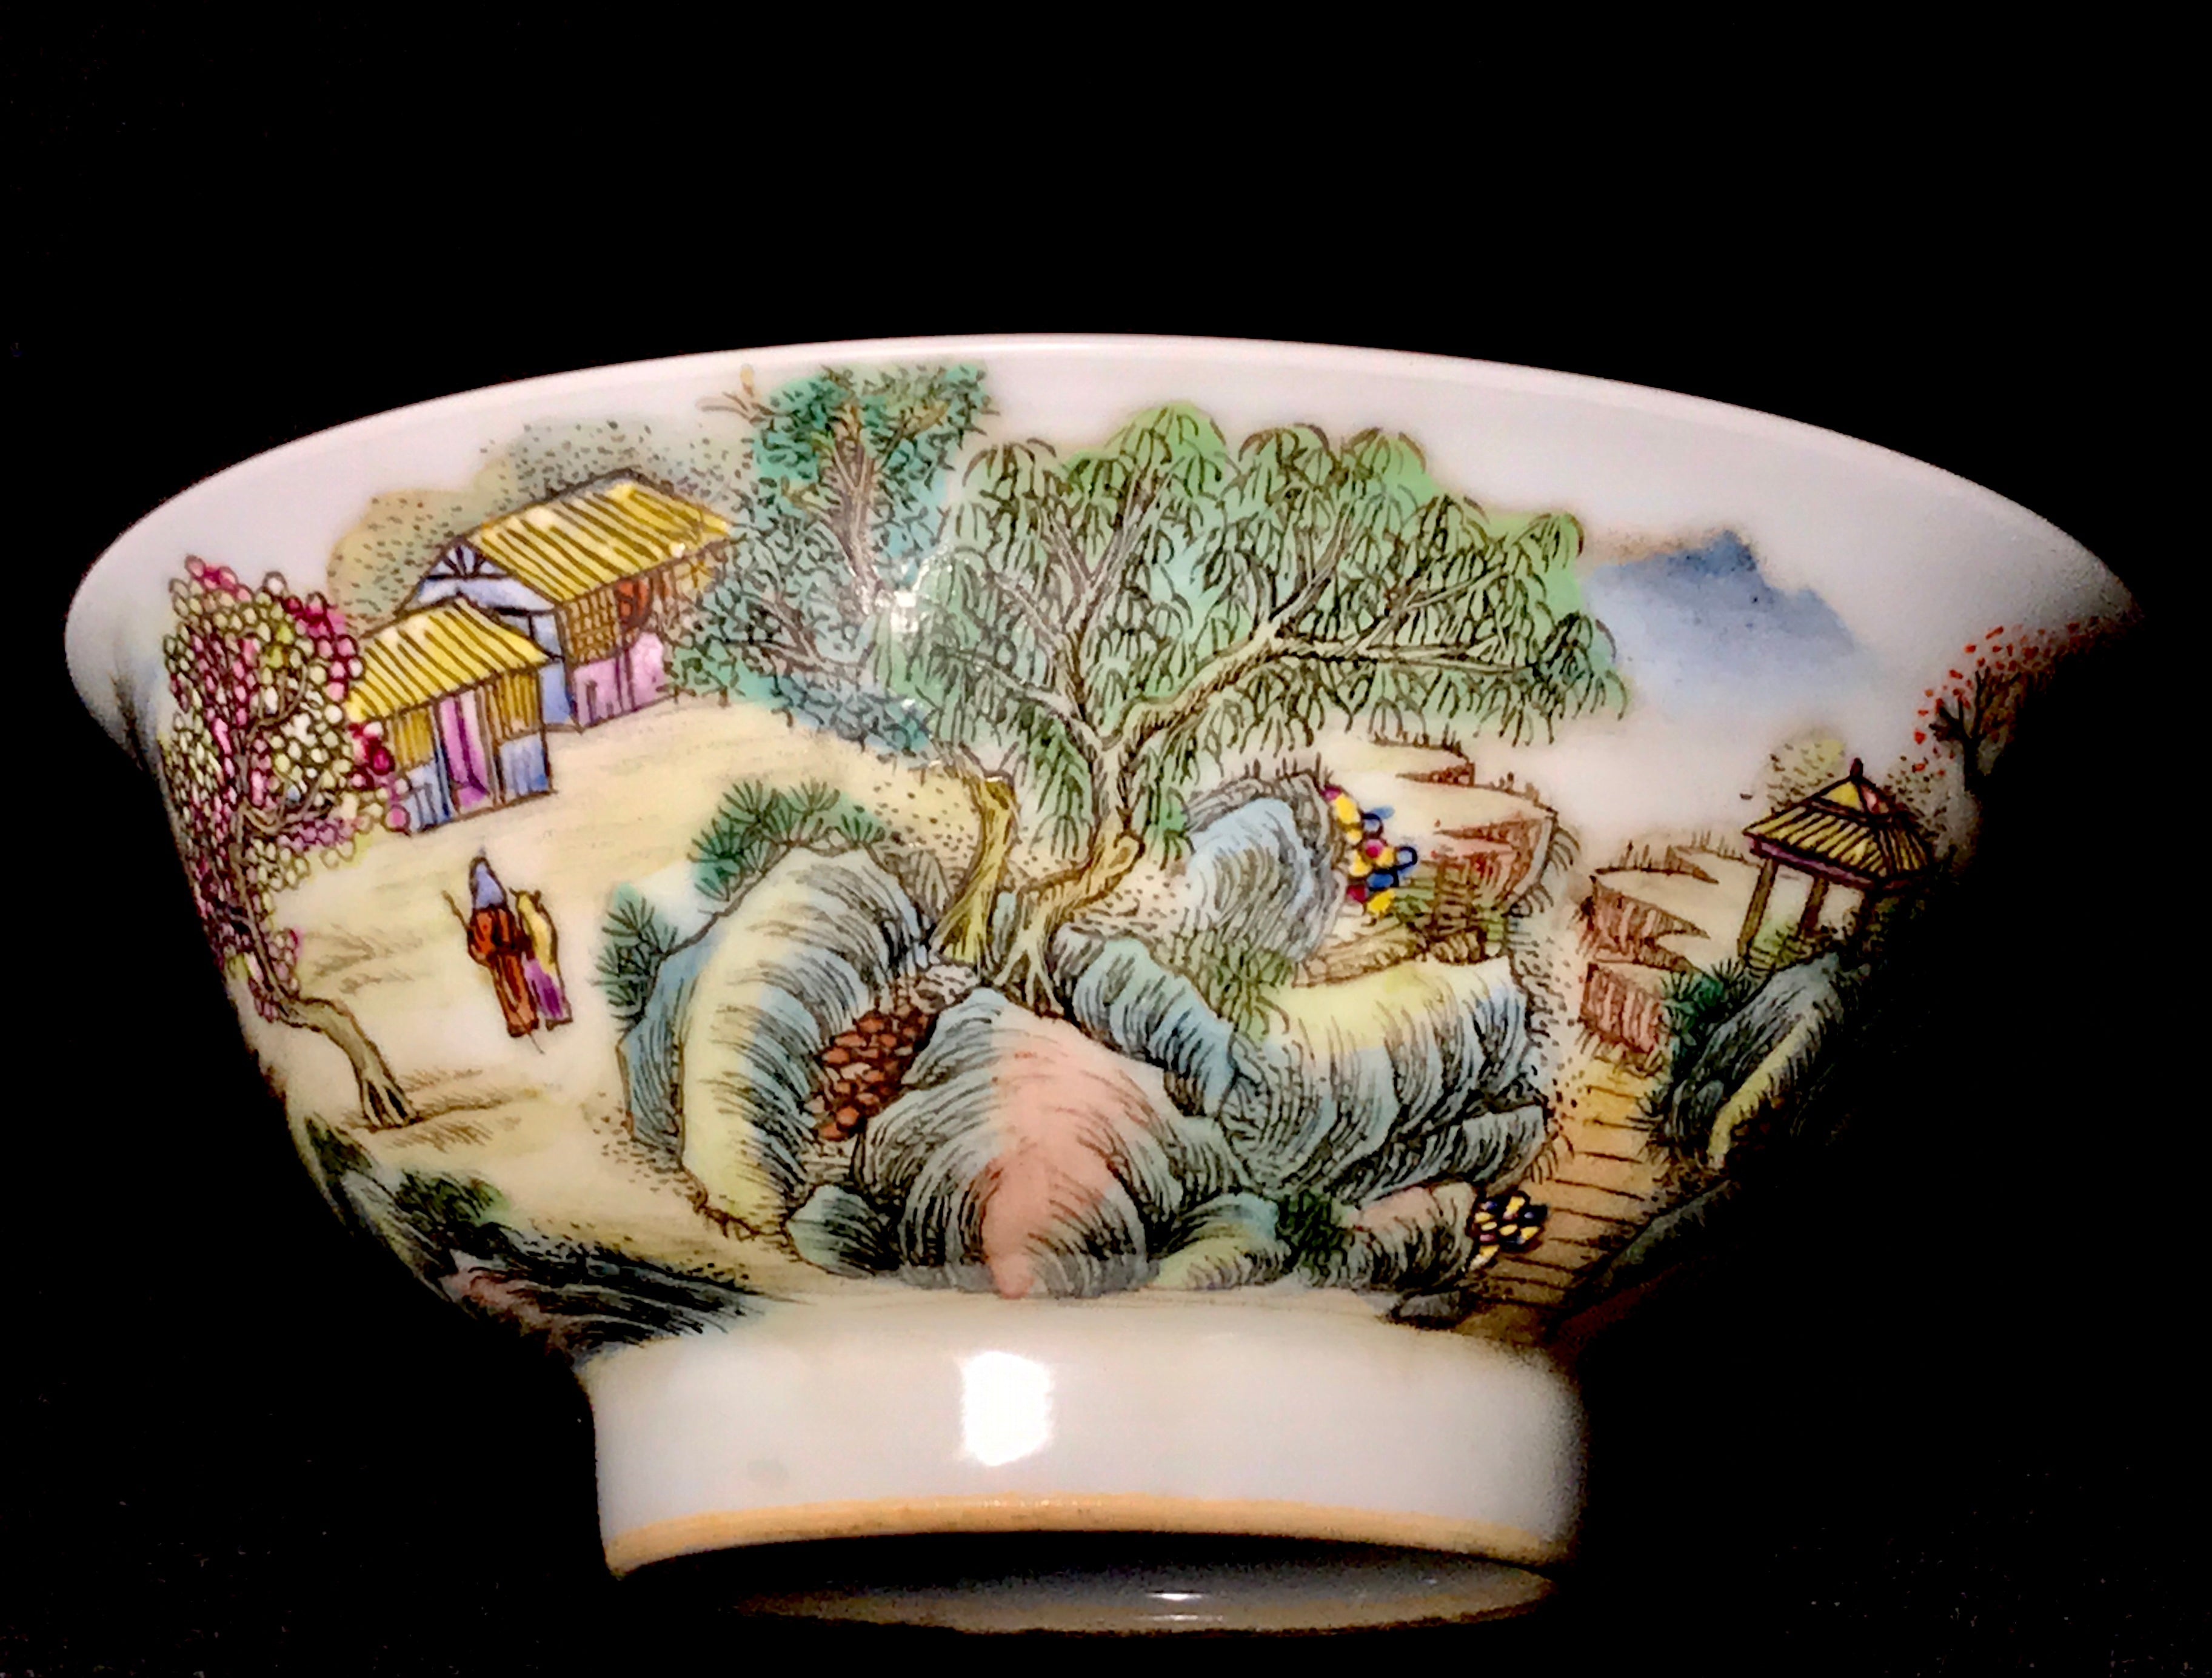 Qing Dynasty Bowl with Qianlong Seal - 10 Dynasties